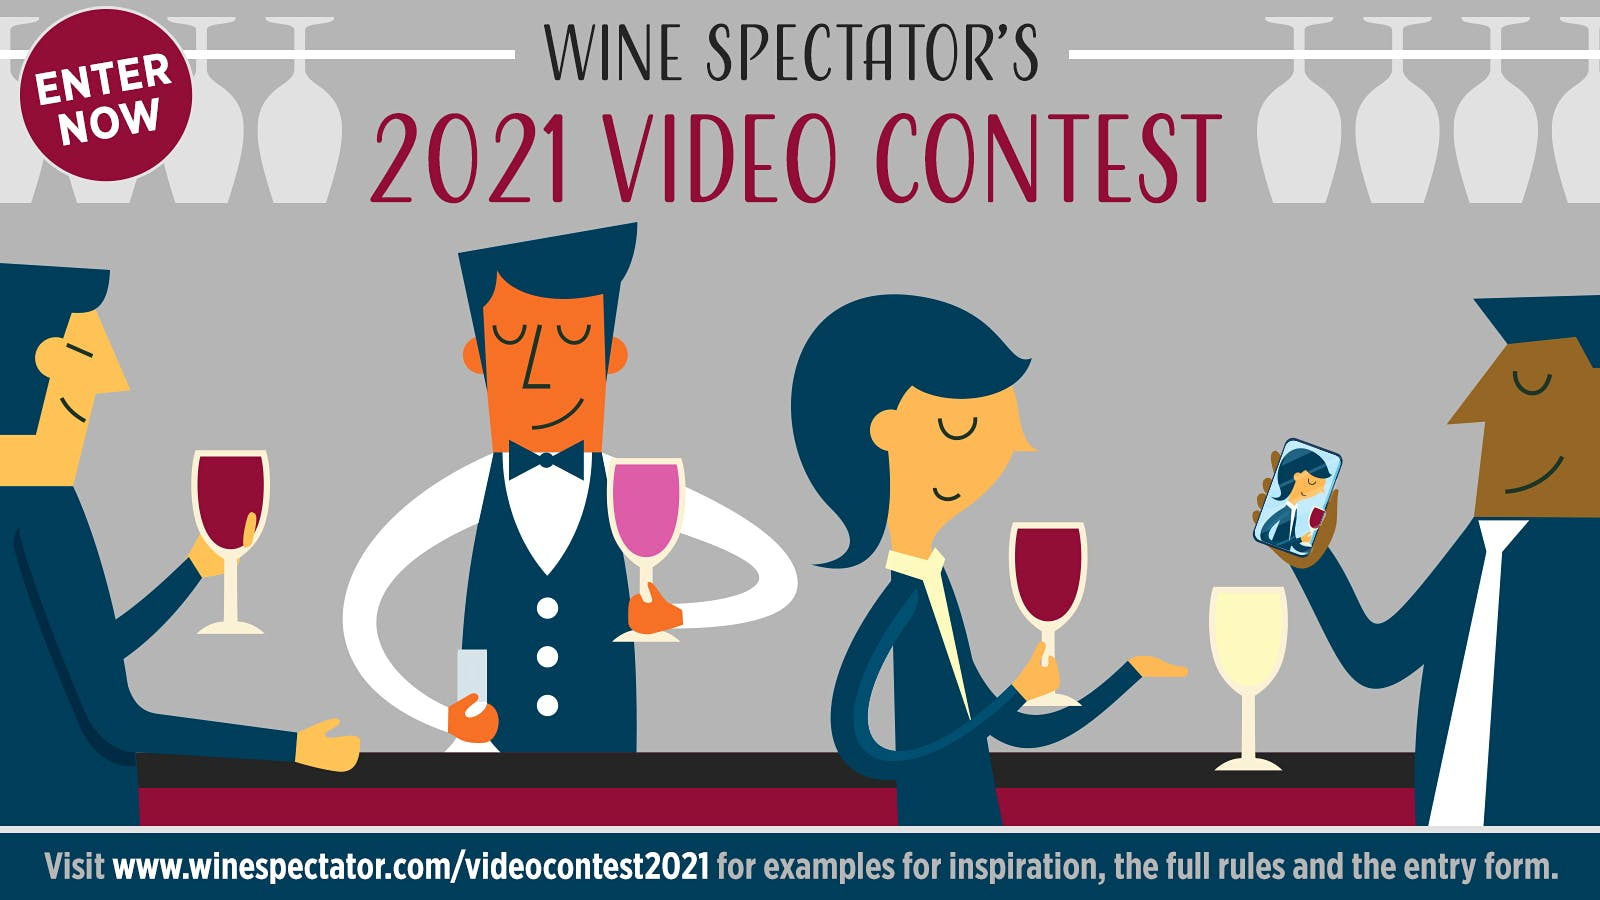 Wine Spectator 2021 Video Contest: Rules, Prizes and Entry Form